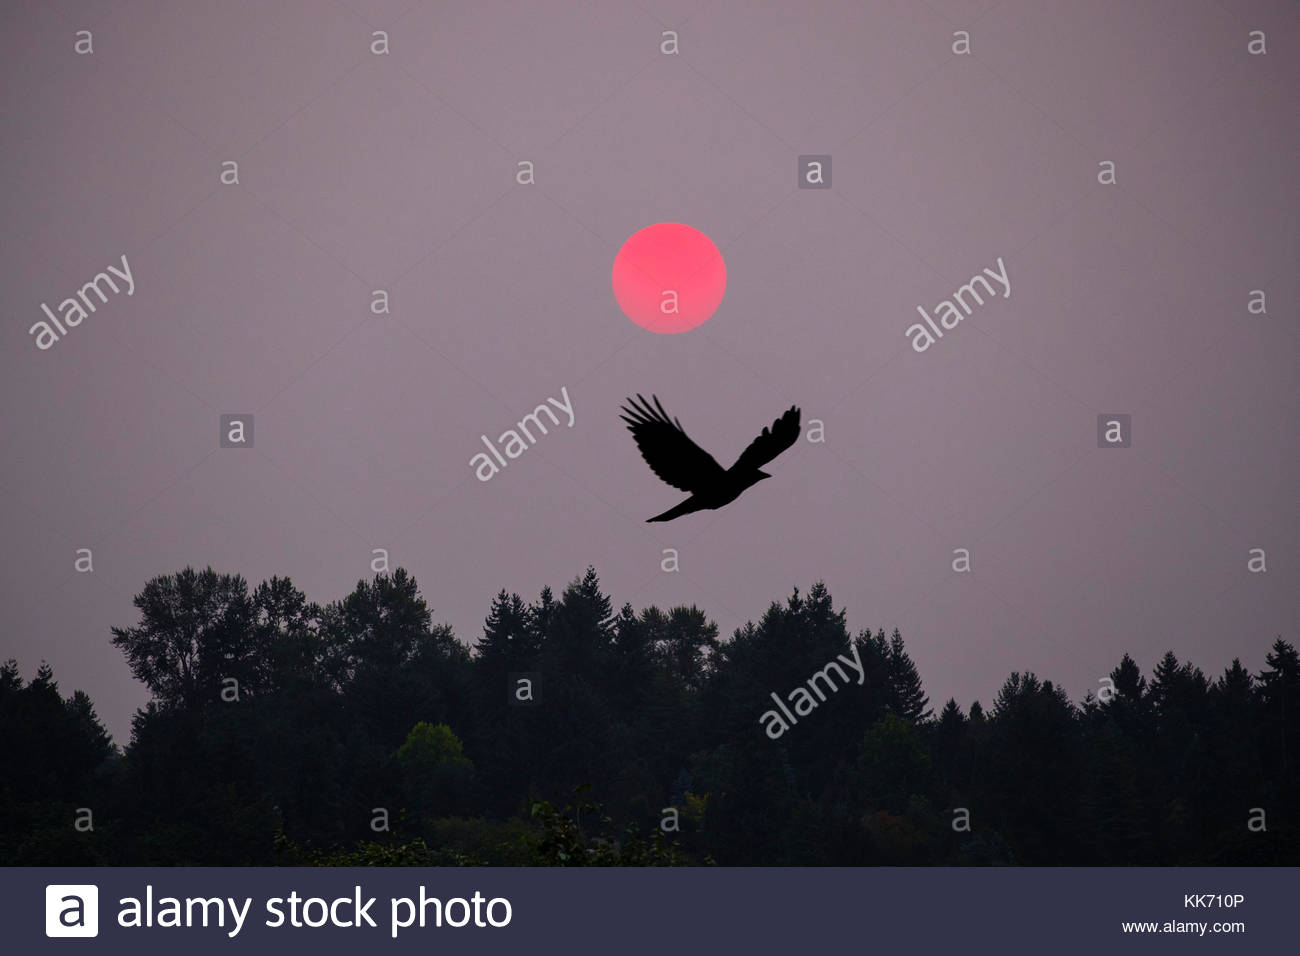 As the sun rises through thick haze caused by extensive wildfires, an American crow (Corvus brachyrhynchos) flies - Stock Image